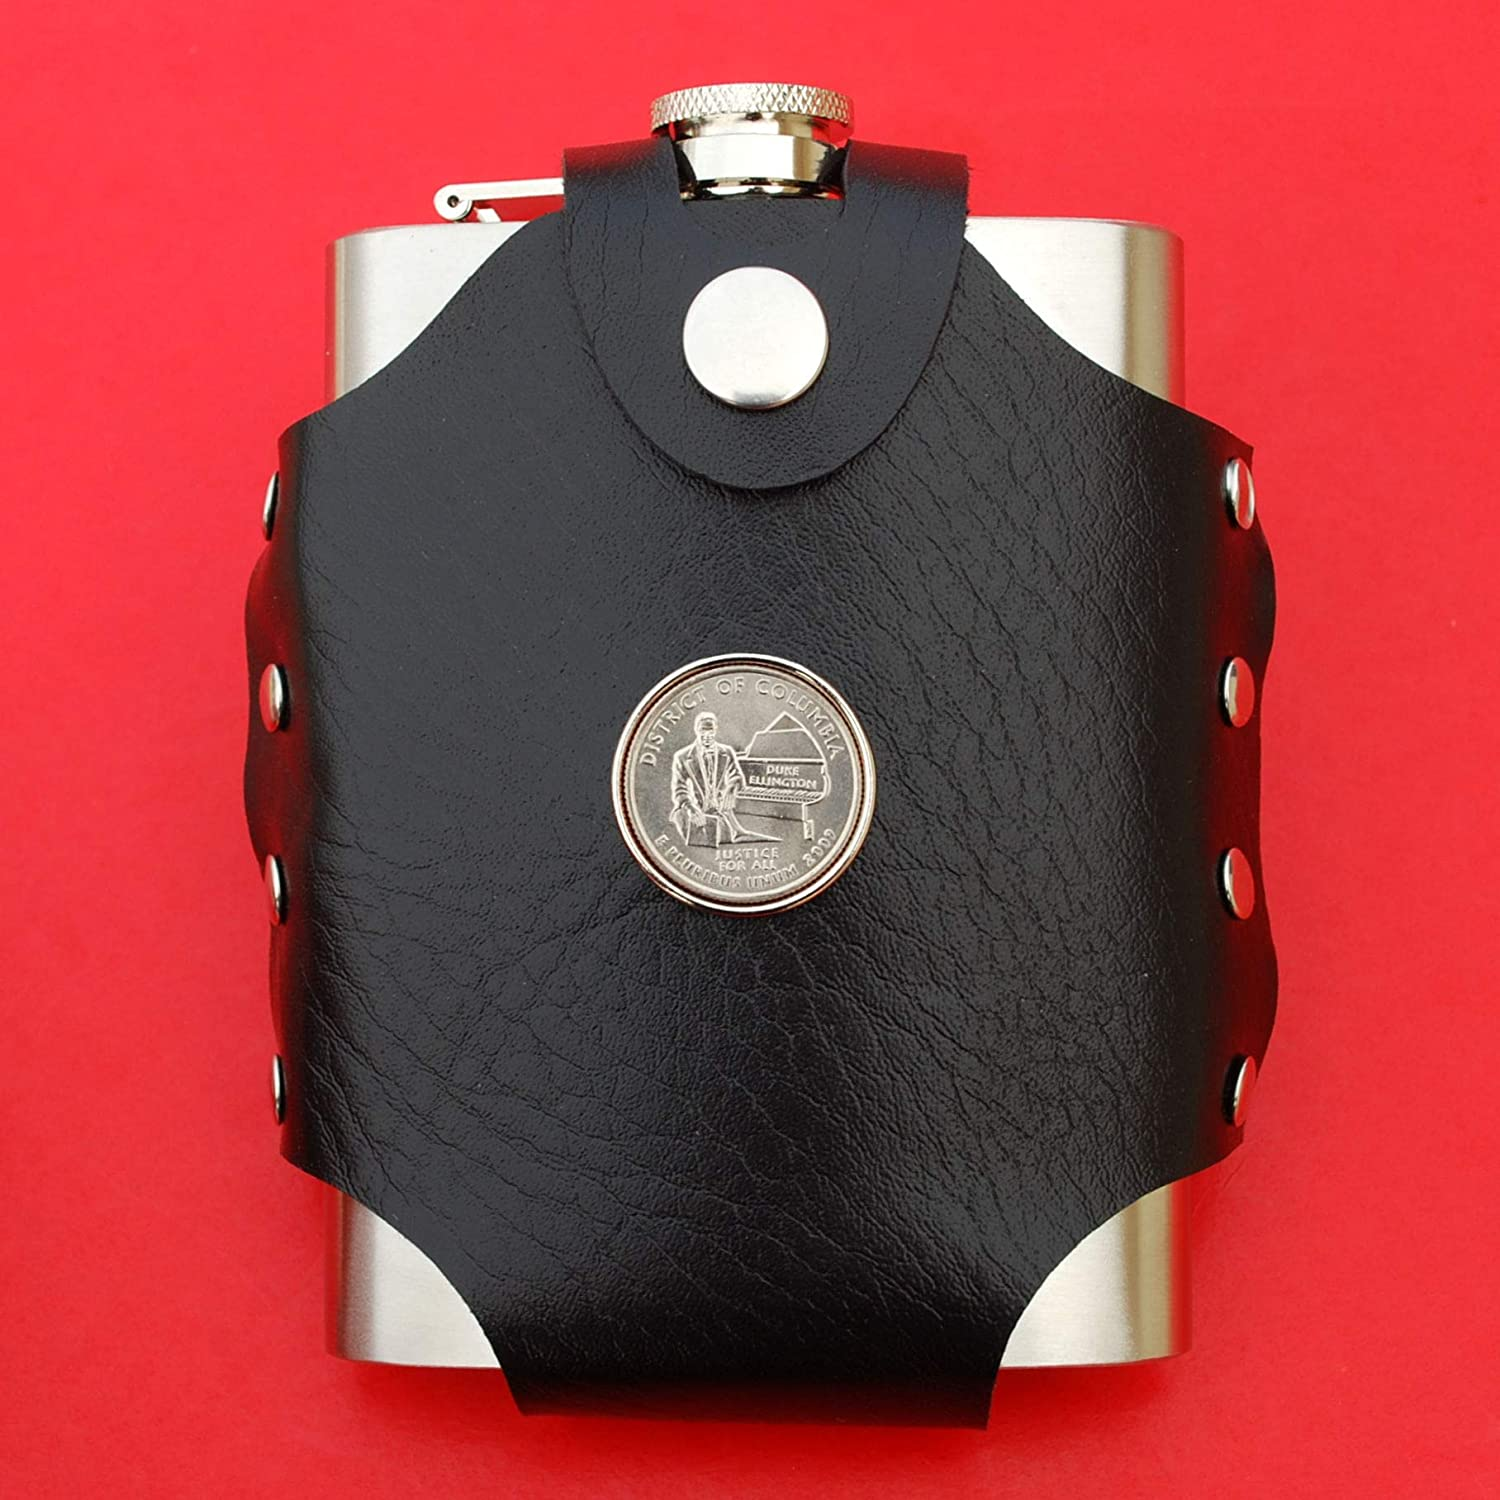 US 2009 District of Columbia Quarter BU Uncirculated Coin Leak Proof Black PU Leather Wrapped Stainless Steel 8 Oz Hip Flask DC /& Territories